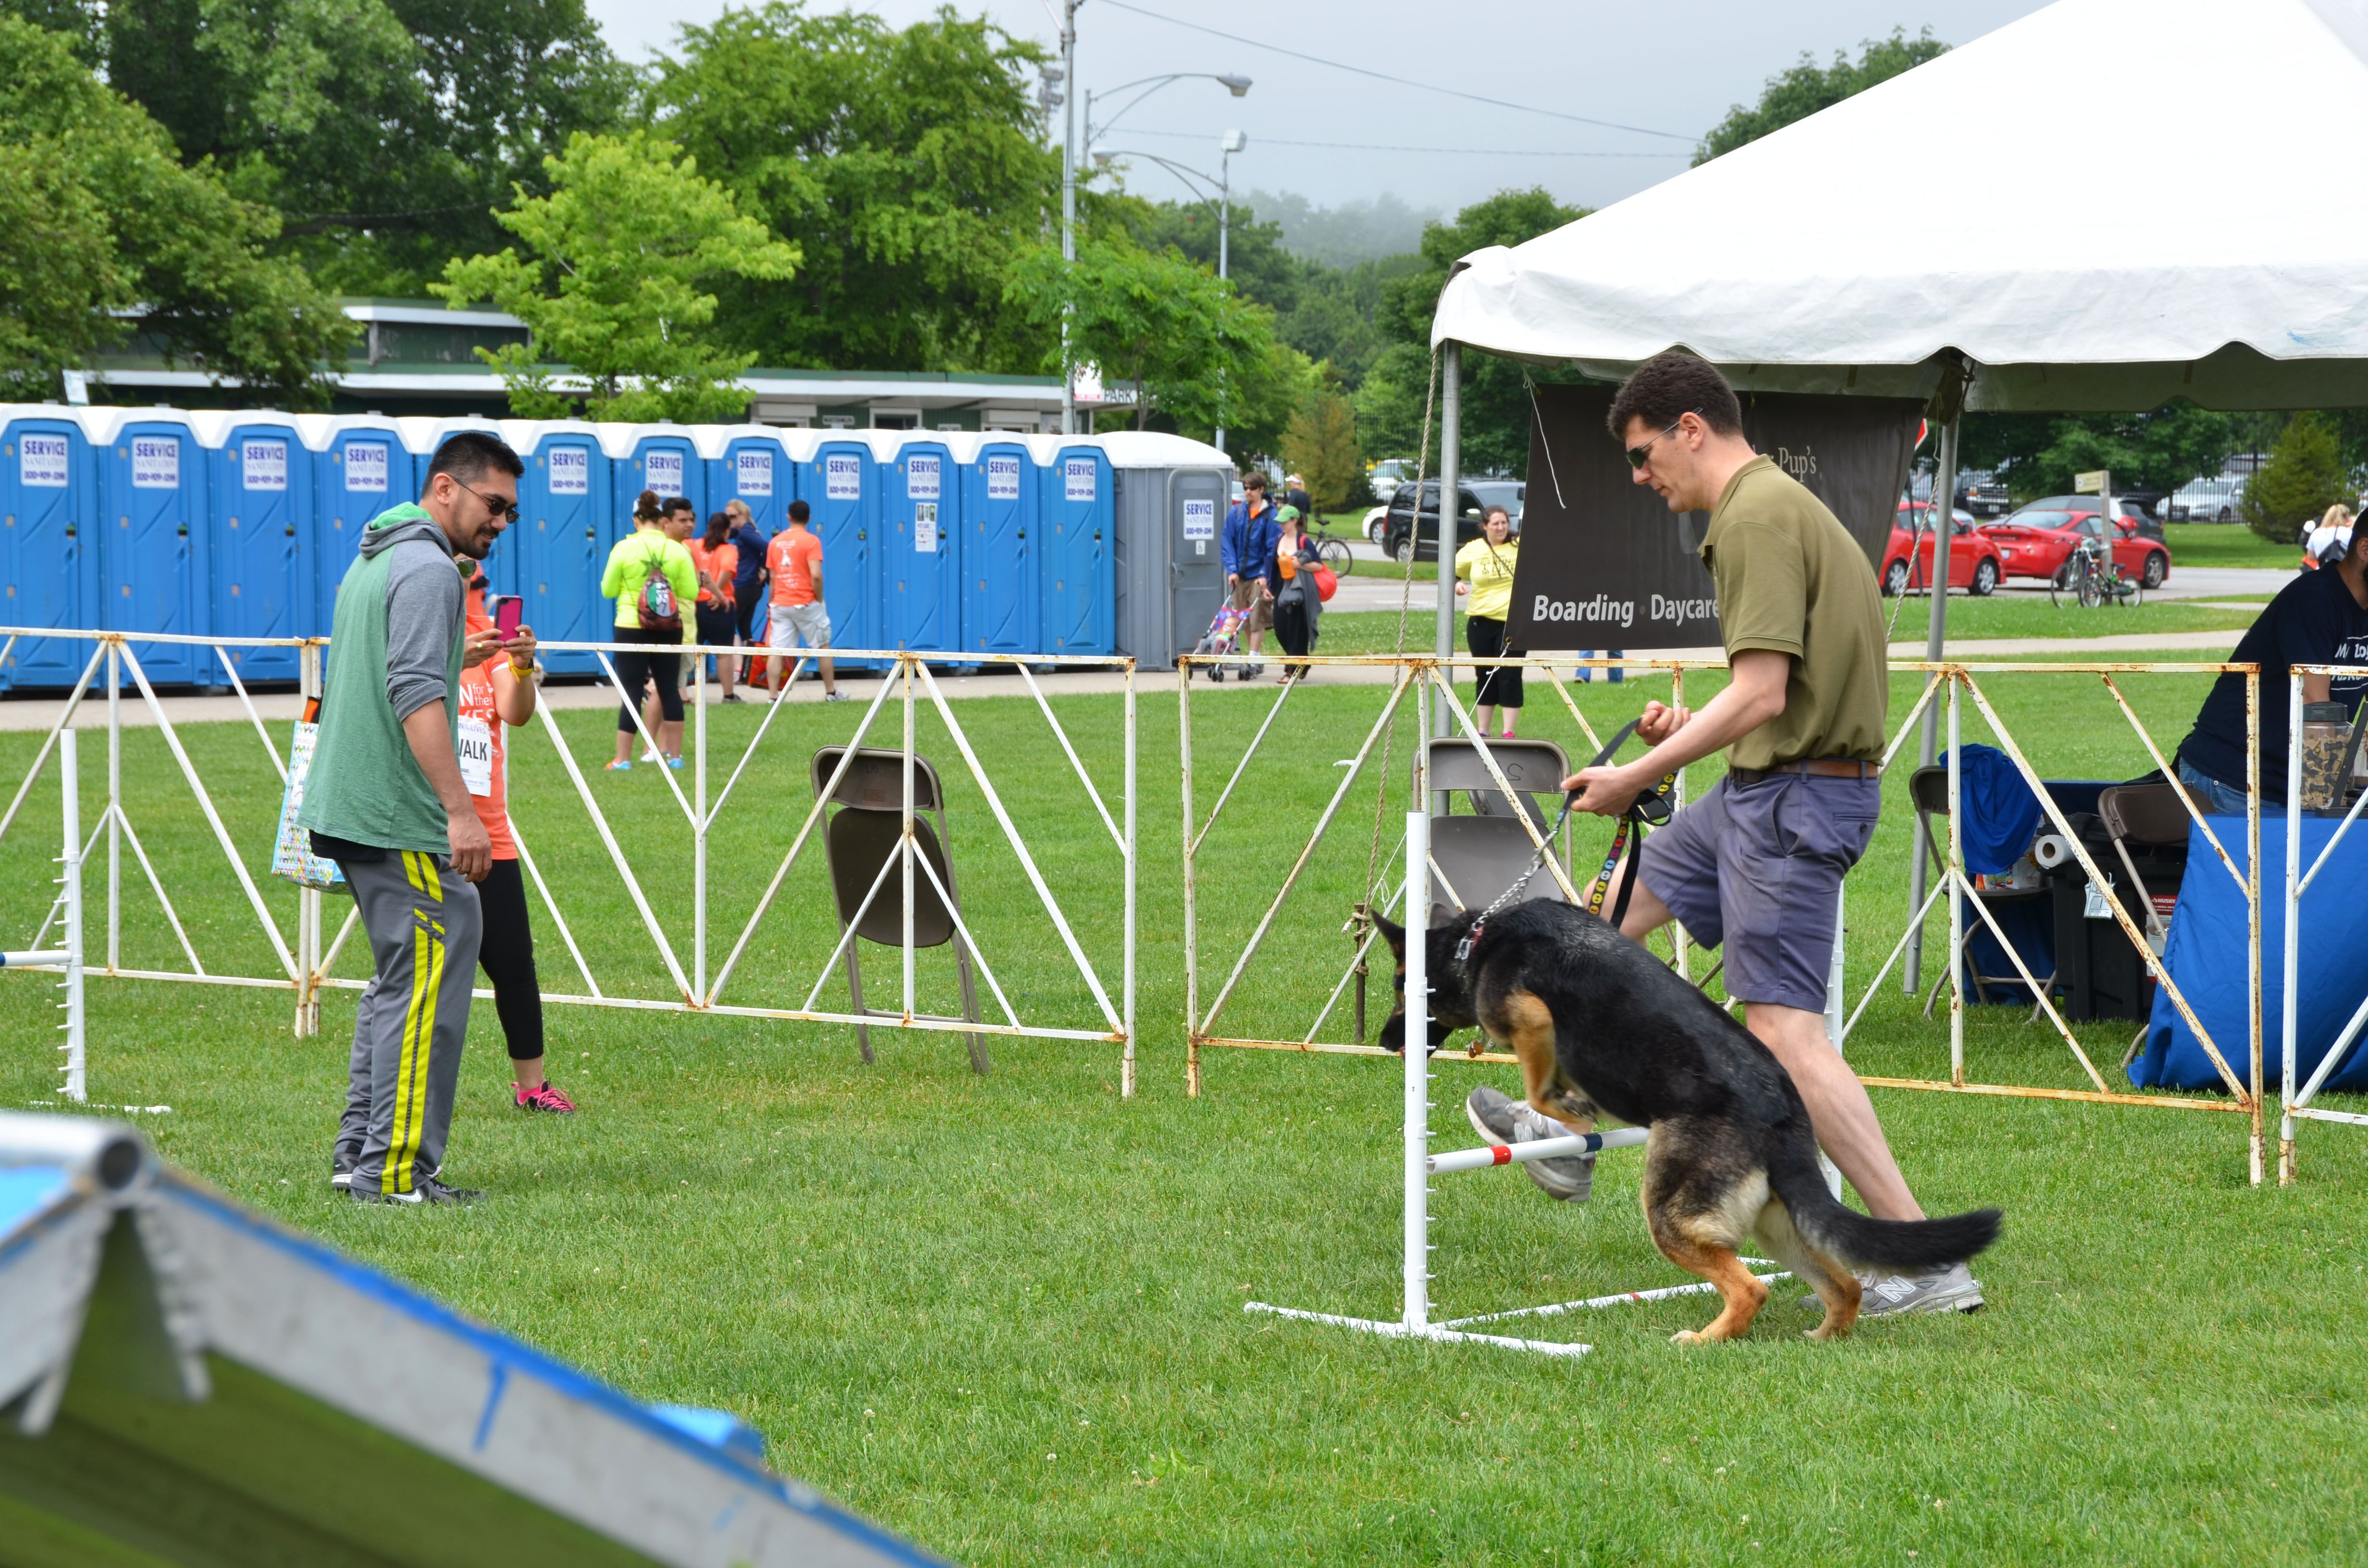 A dog participating in the agility course - Photography by Tracie Schneider